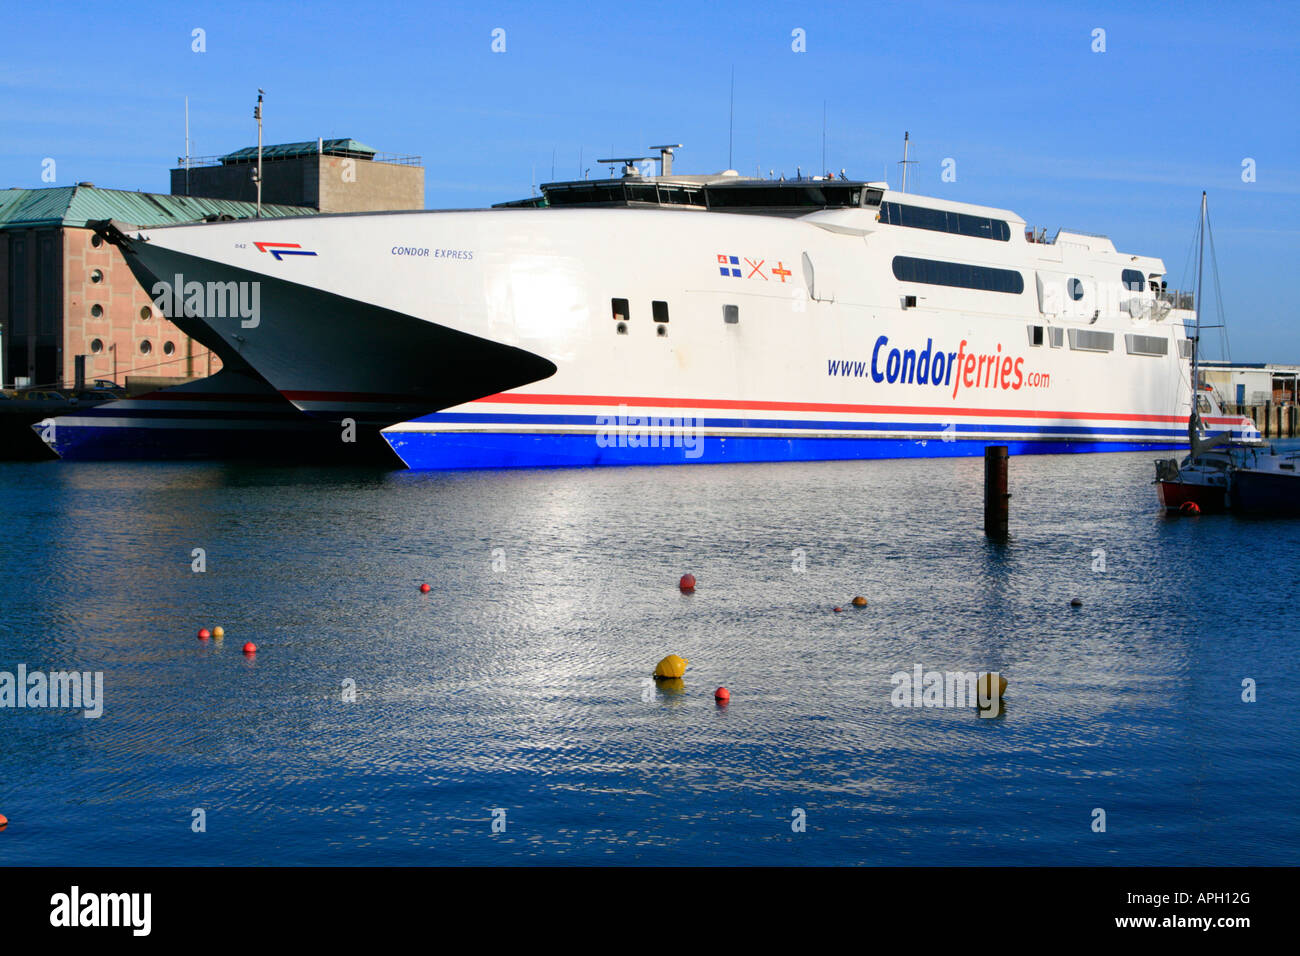 condor shipping seacats hydrofoil ferry in weymouth harbour, dorset